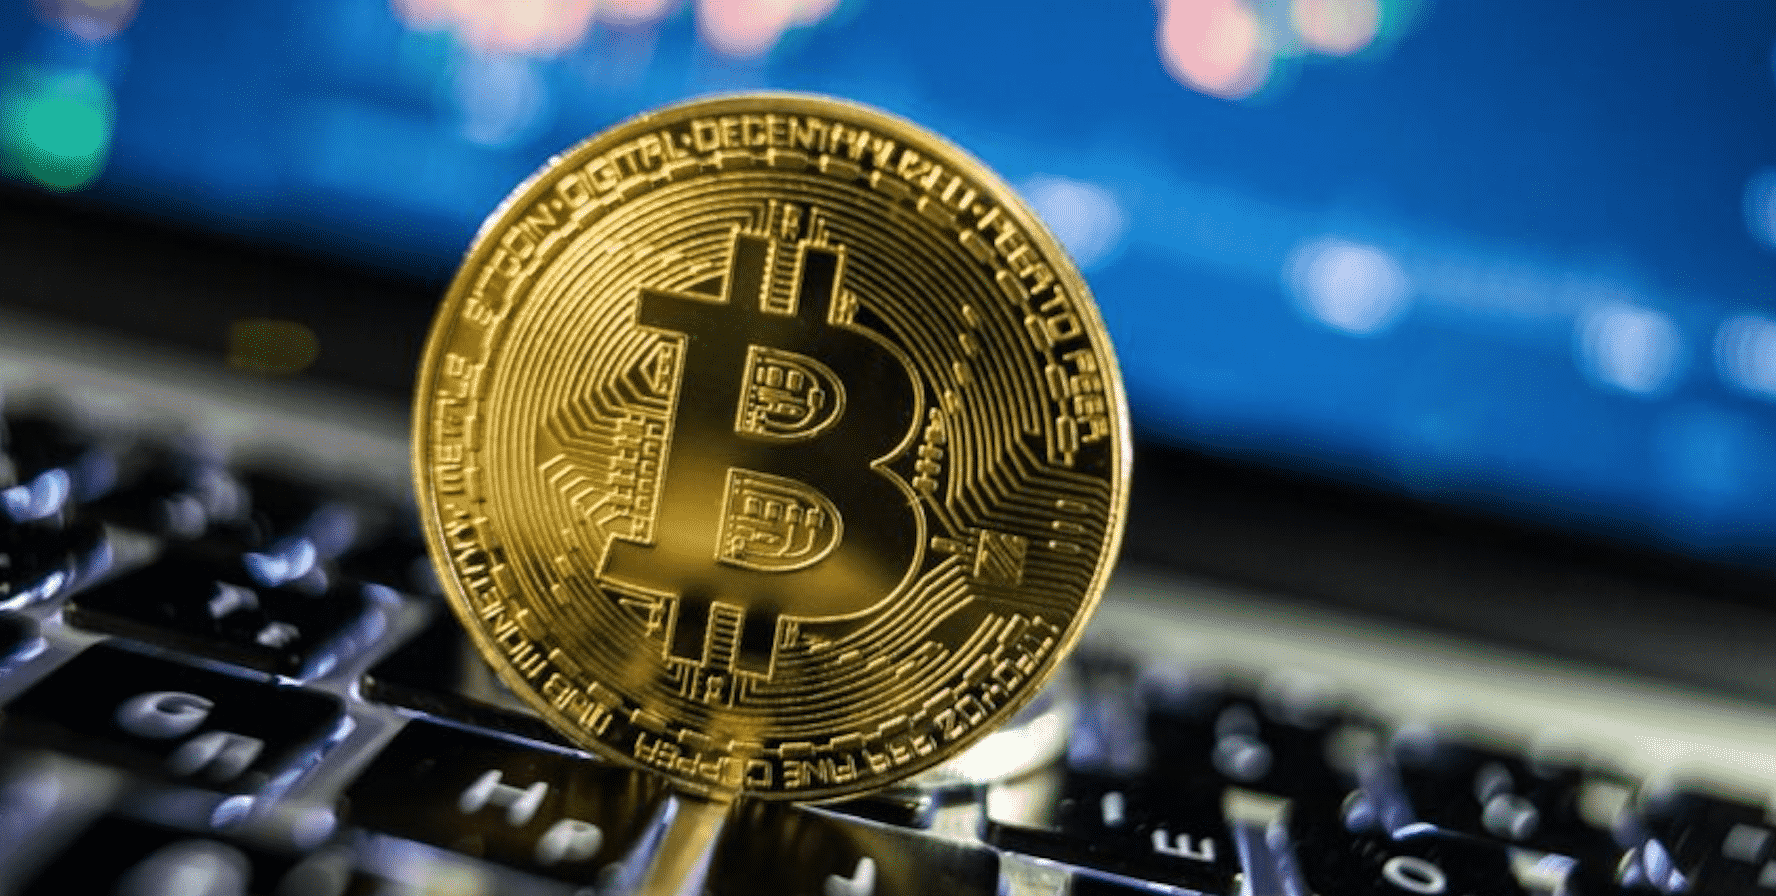 How Bitcoin is Generating Incomes for the People?